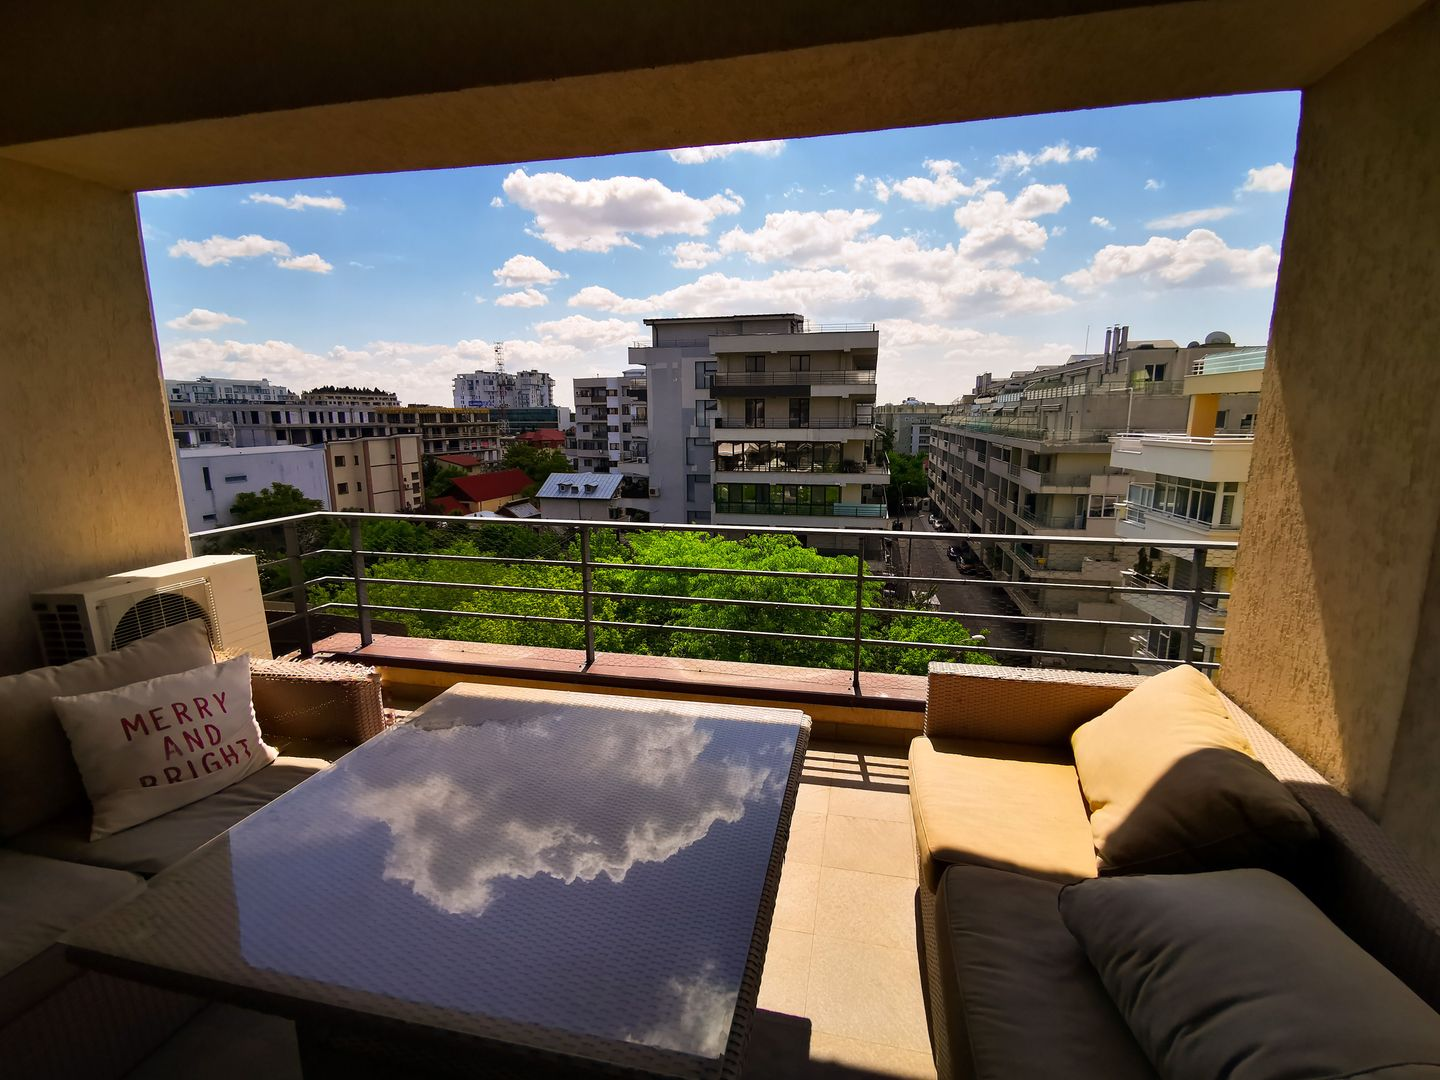 {:ro}Inchiriere: Parc Herastrau - Nordului 2 camere, 80 mp, cu terasa{:}{:en}For rent: Parc Herastrau - Nordului area, 2 rooms, 80 sq m, with terrace{:}